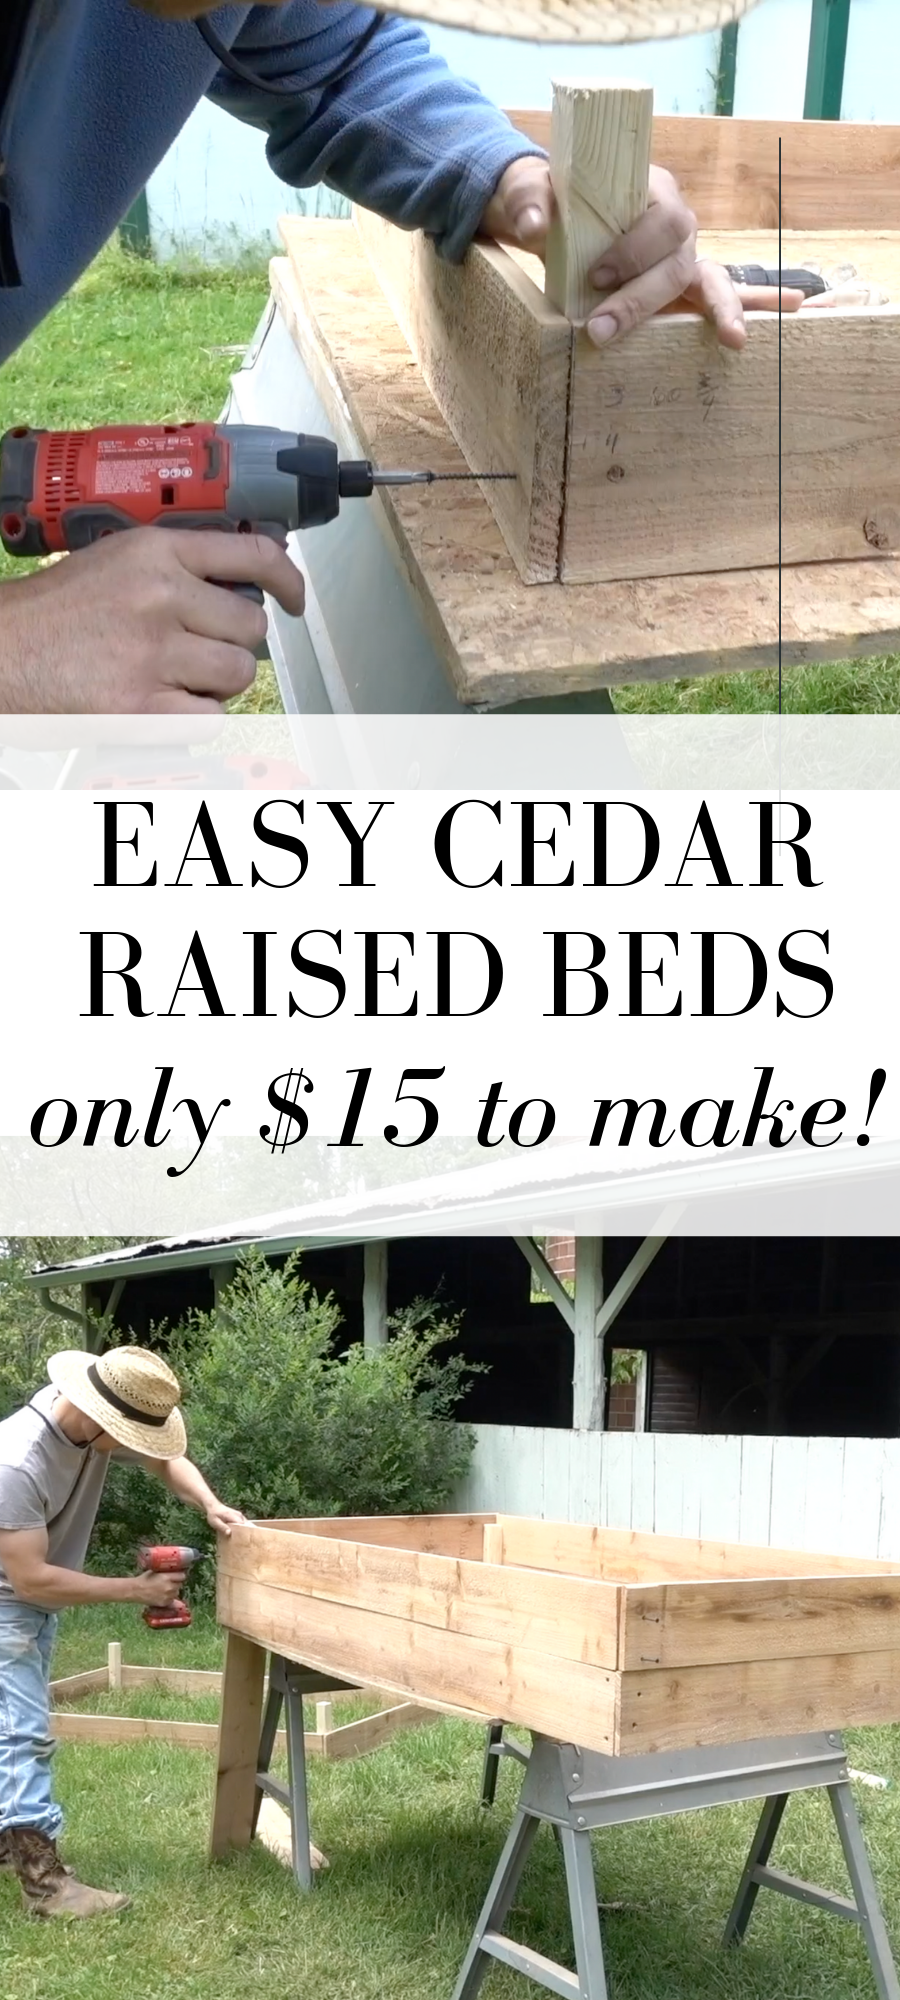 How To Build A Raised Garden Bed For Cheap - Farmhouse on Boone